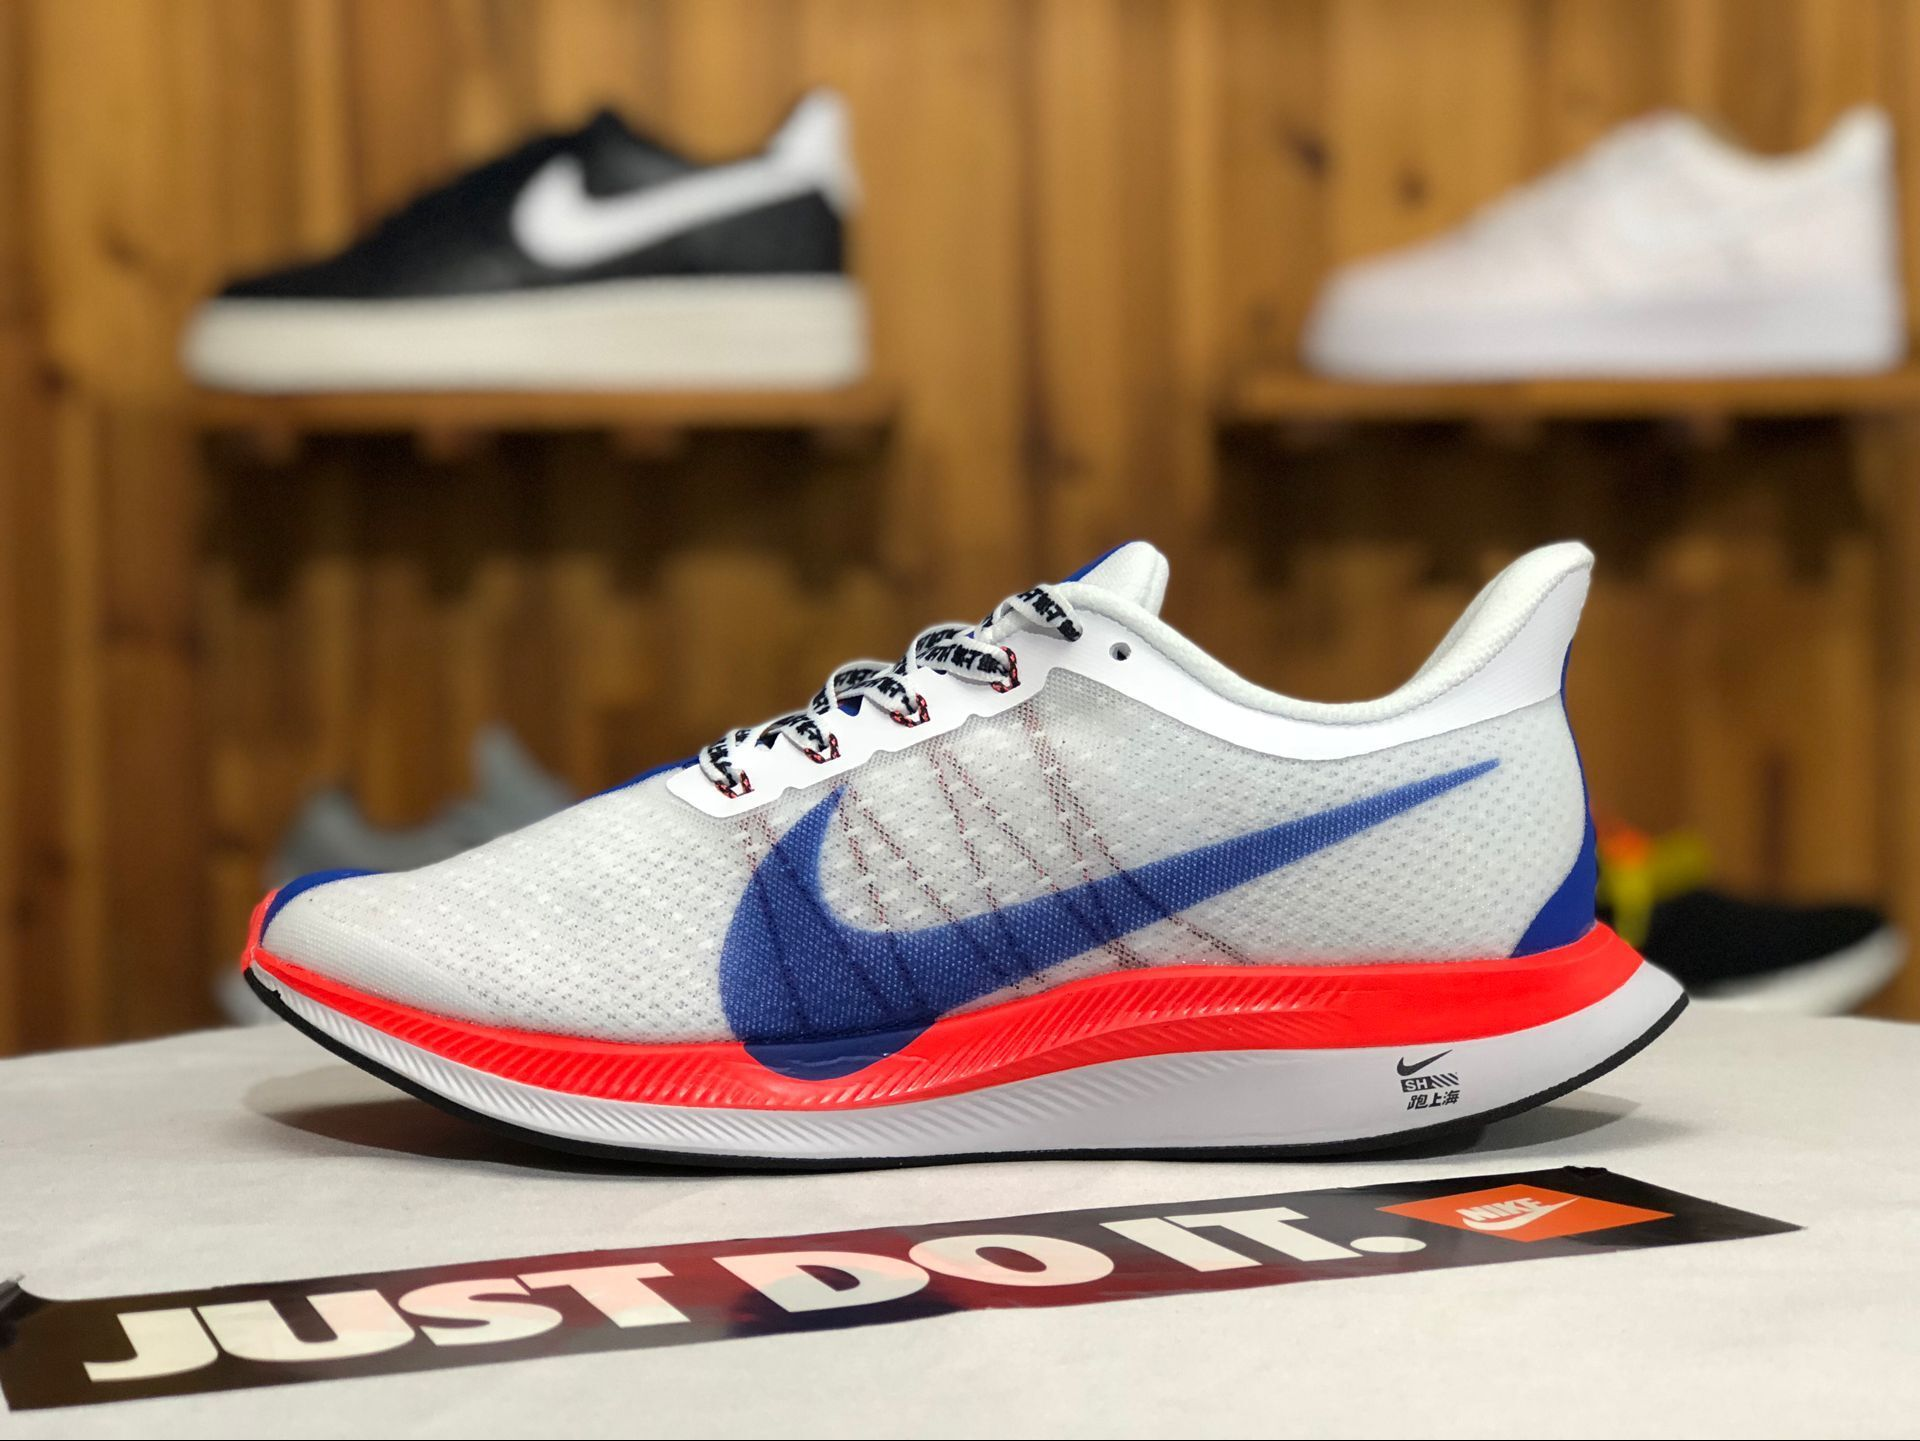 Nike Air Zoom Pegasus 35 Turbo Shanghai Rebels For Sale